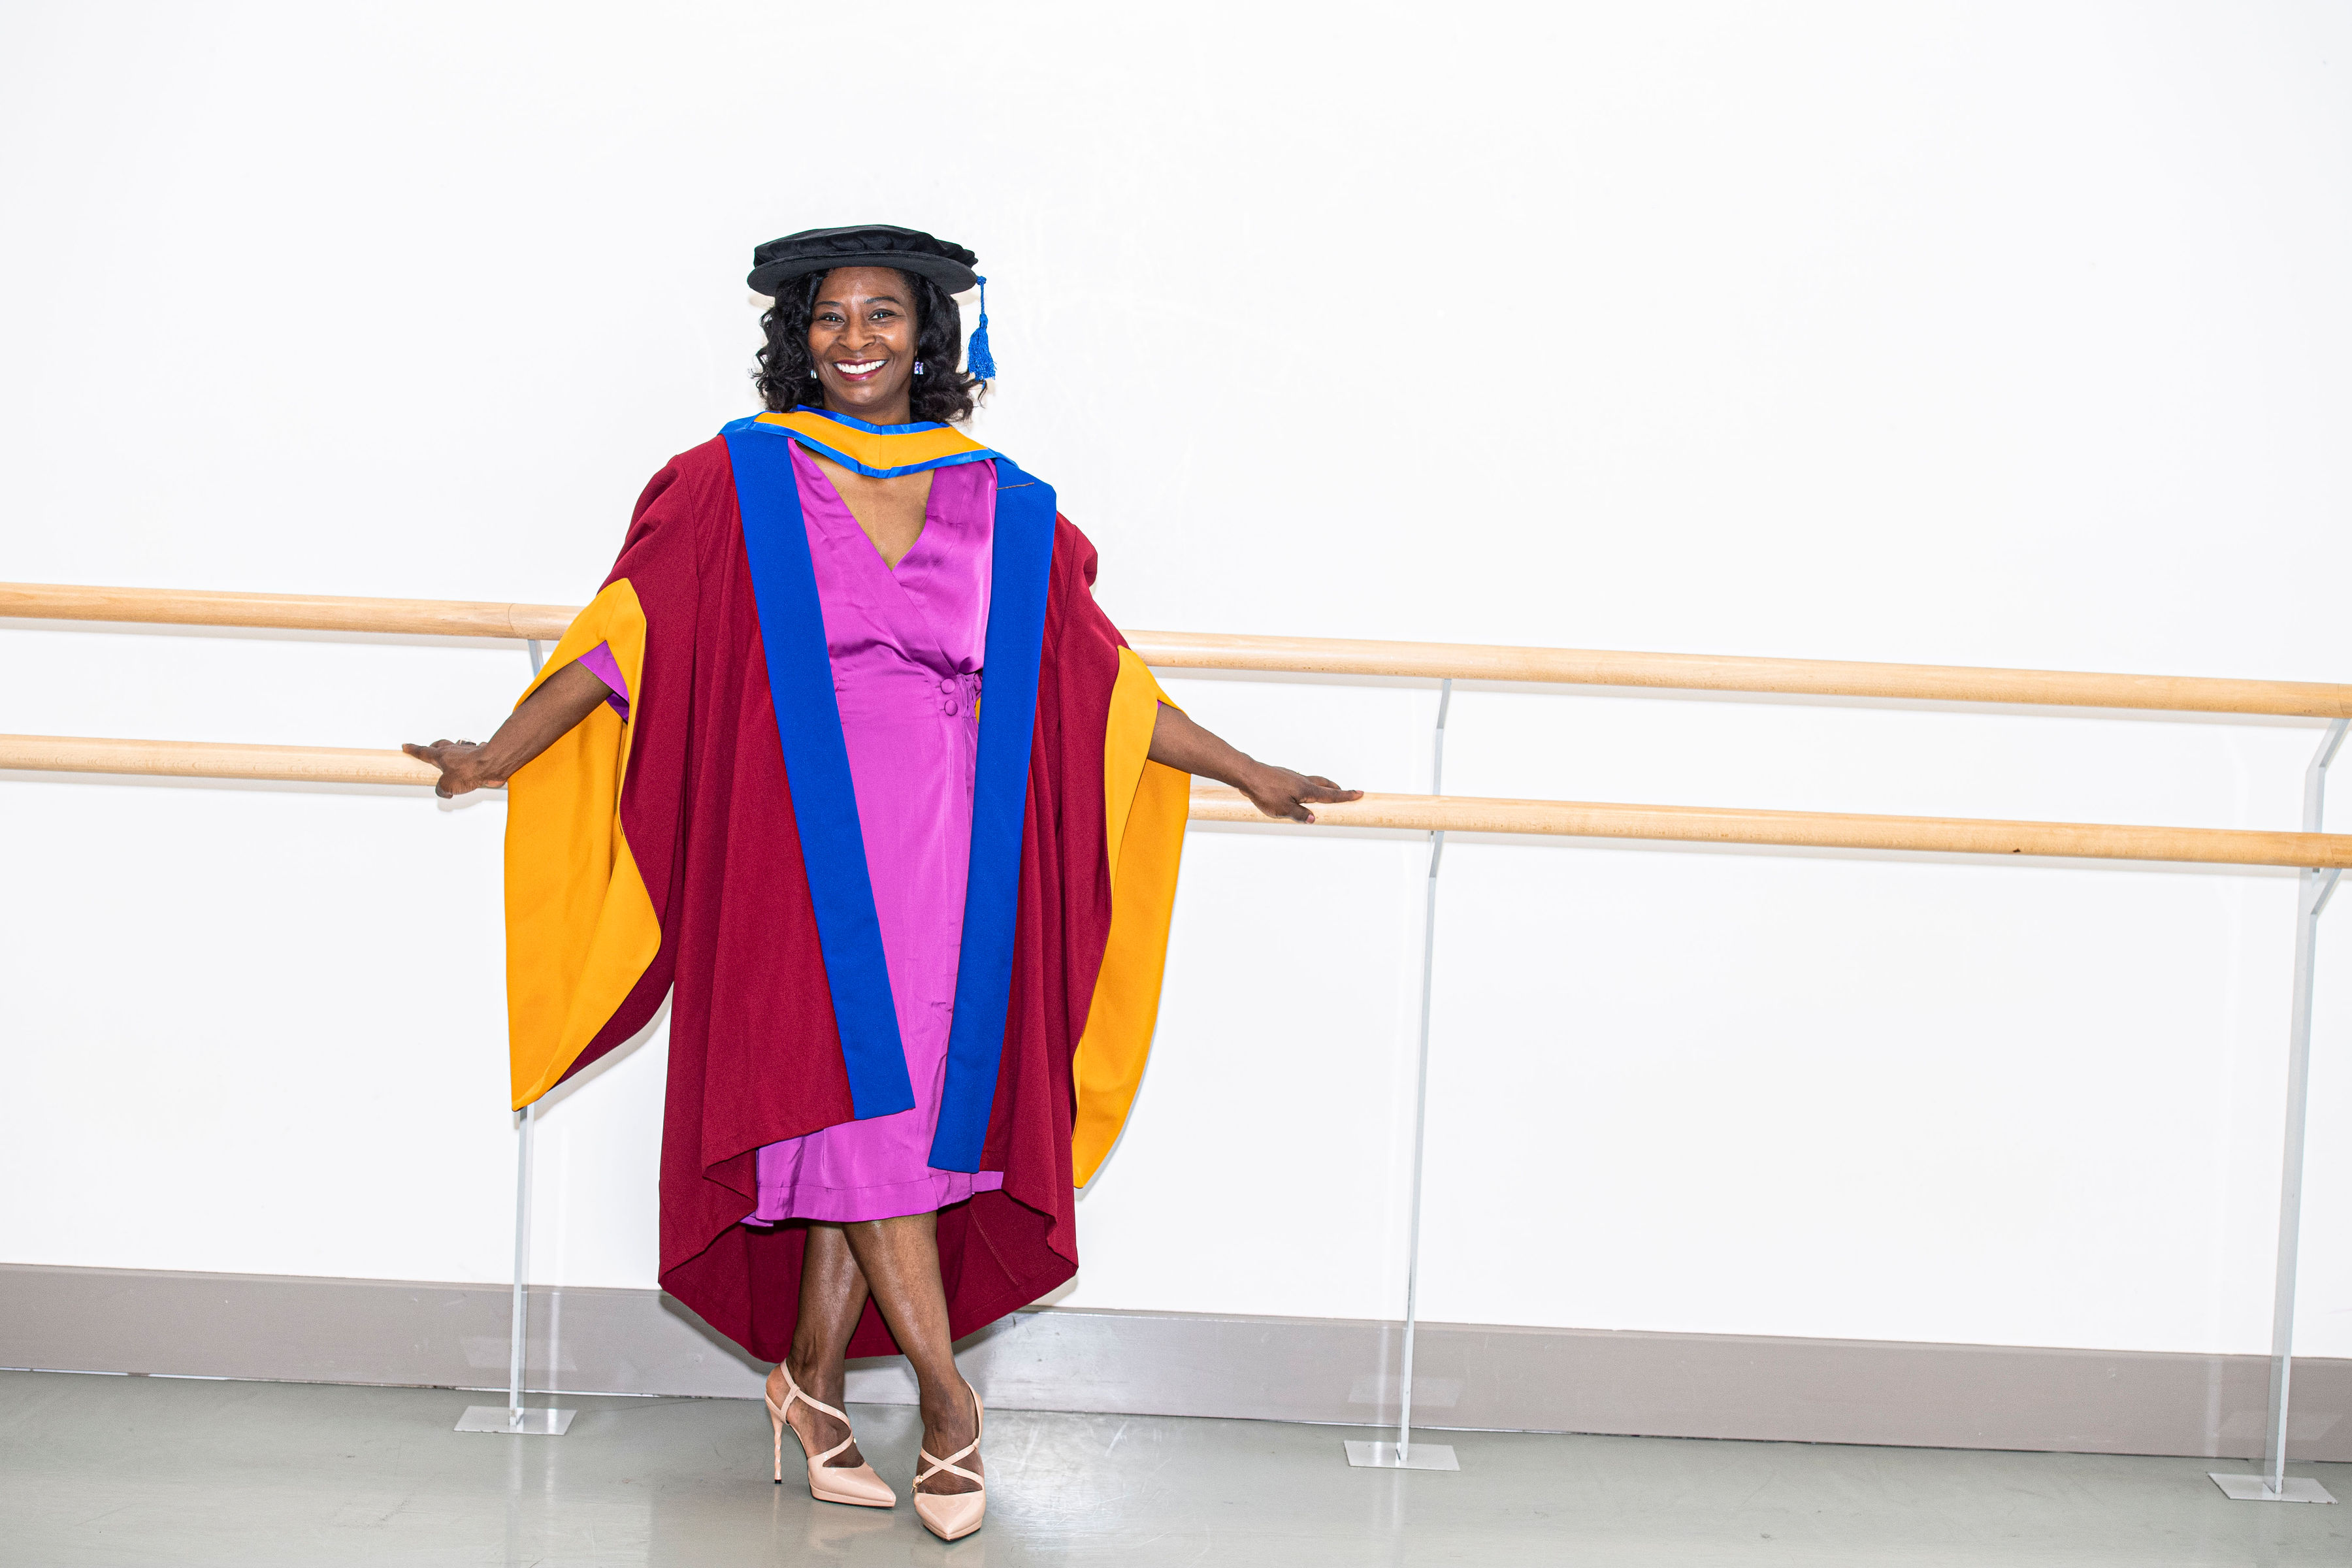 Artistic Director of Phoenix Dance Theatre awarded Honorary Doctorate